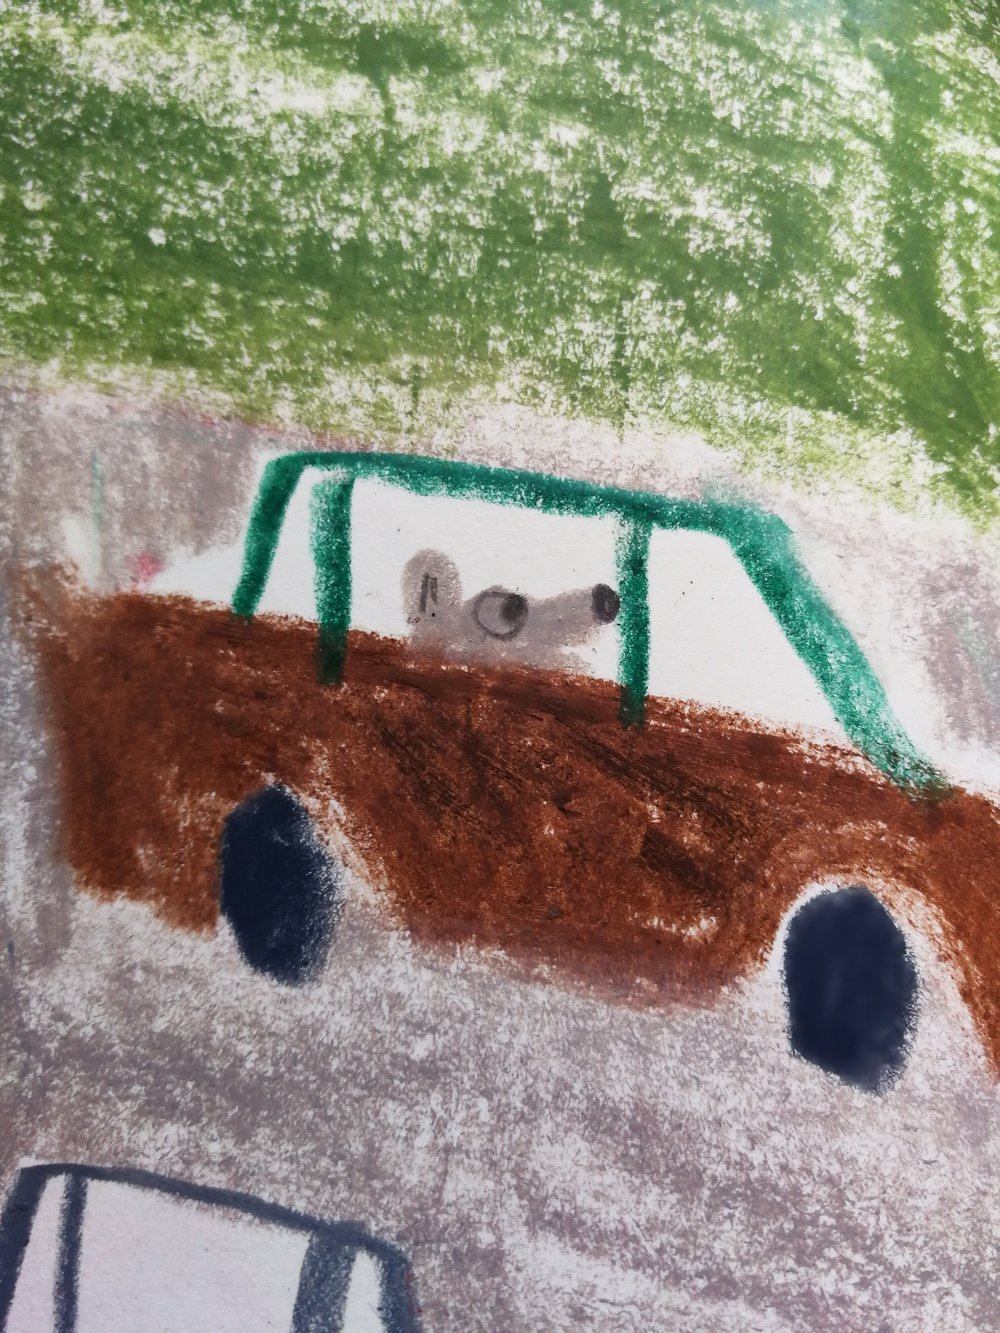 Terrified dog in a car in Marika Maijala's RUUSUN MATKA (Etana Editions 2018).